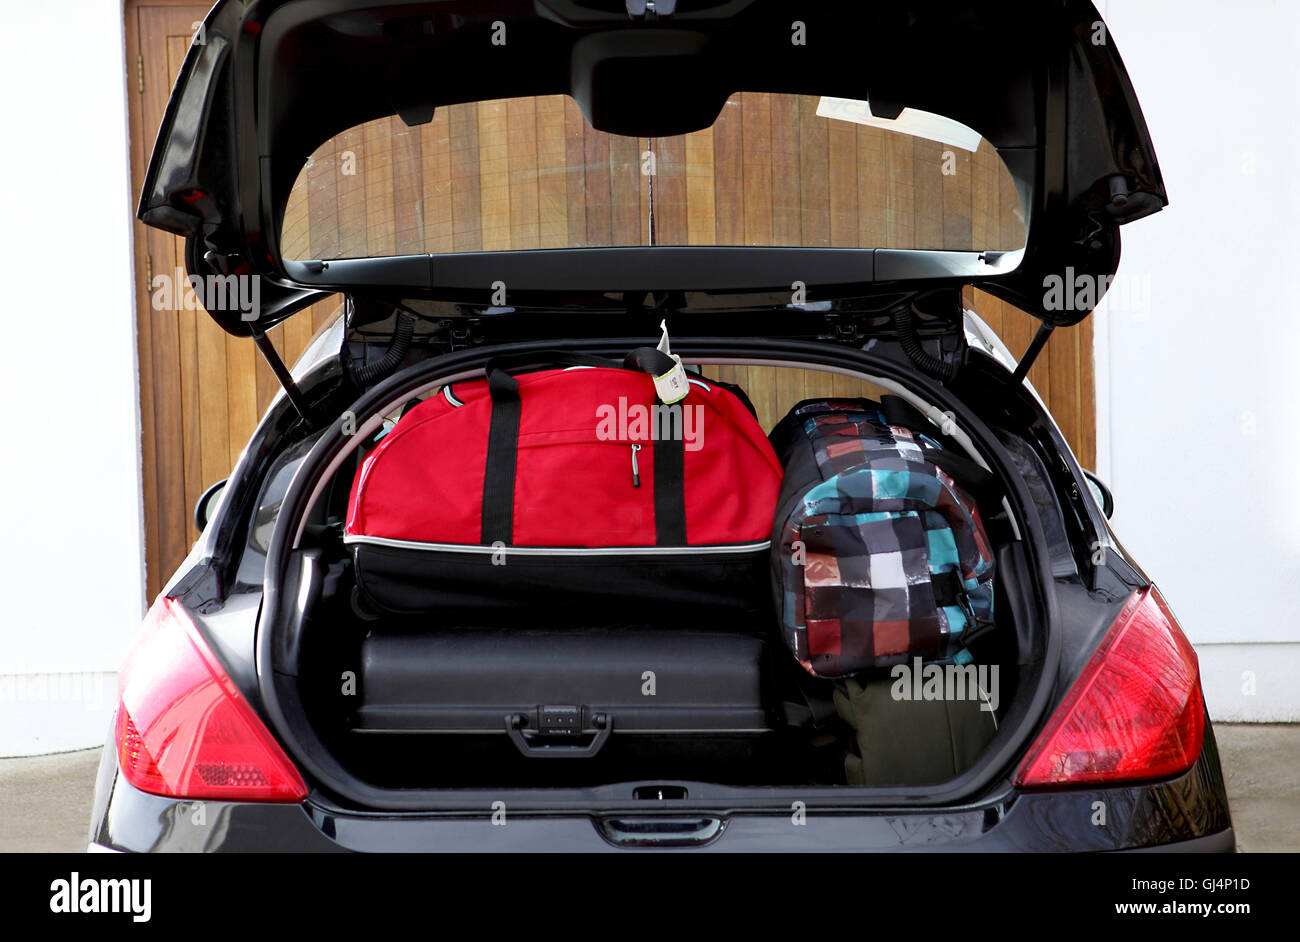 Suitcases and bags in trunk of car ready for vacation - Stock Image